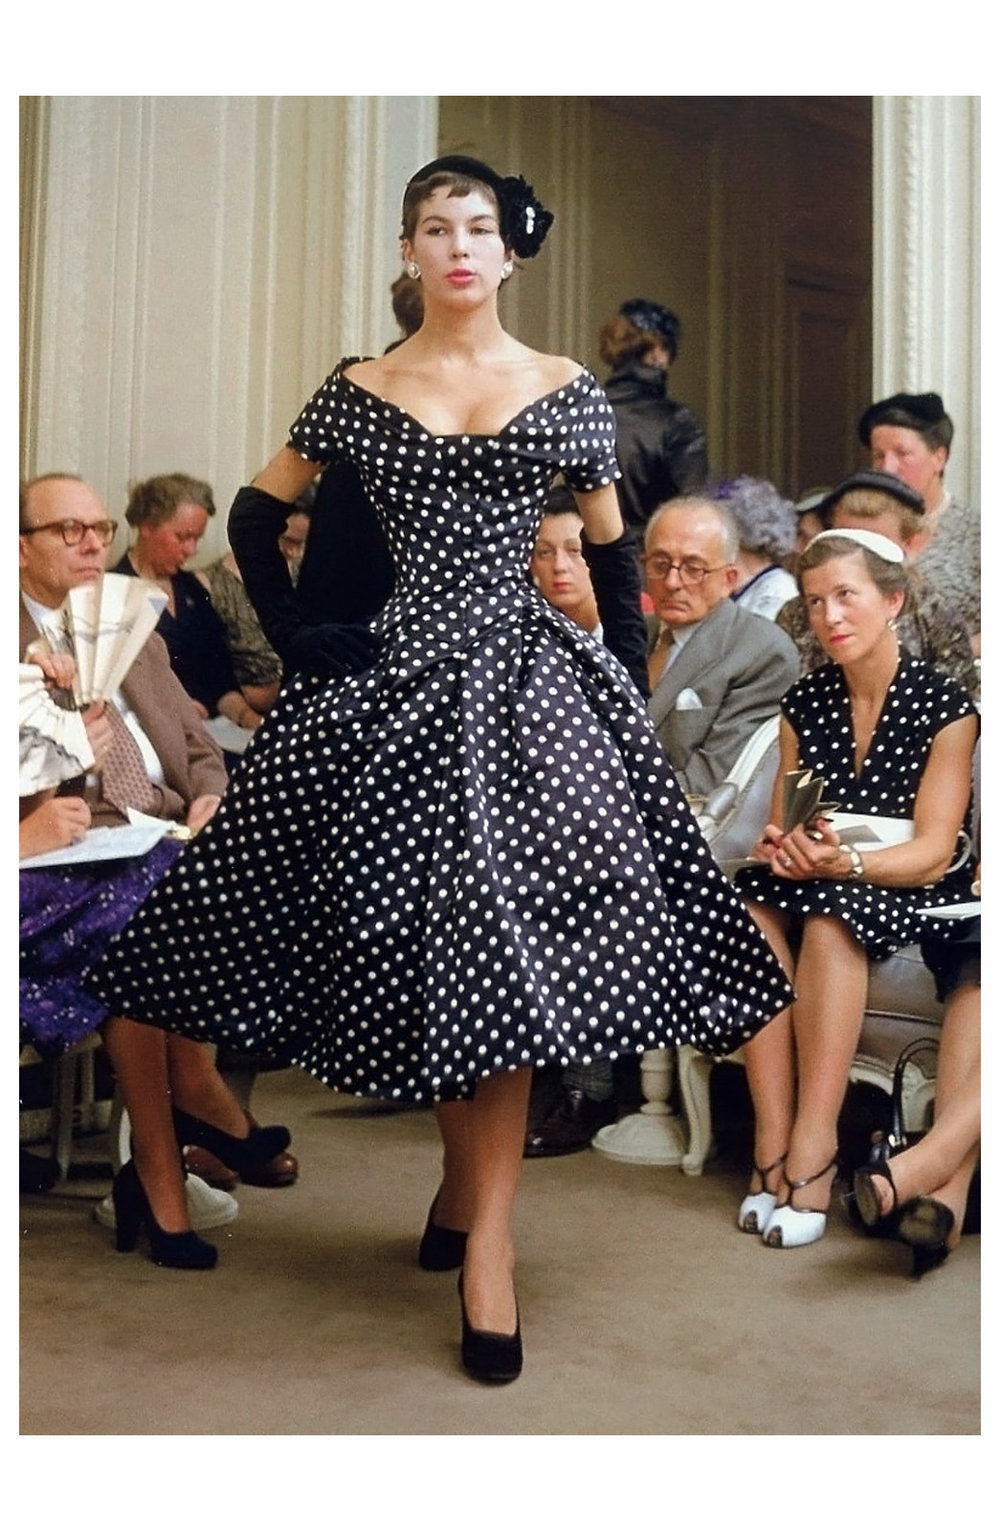 victoire-presents-diors-dress-called-22porto-rico22-autumnwinter-collection-h-line-1954-photo-by-mark-shaw-paris.jpg